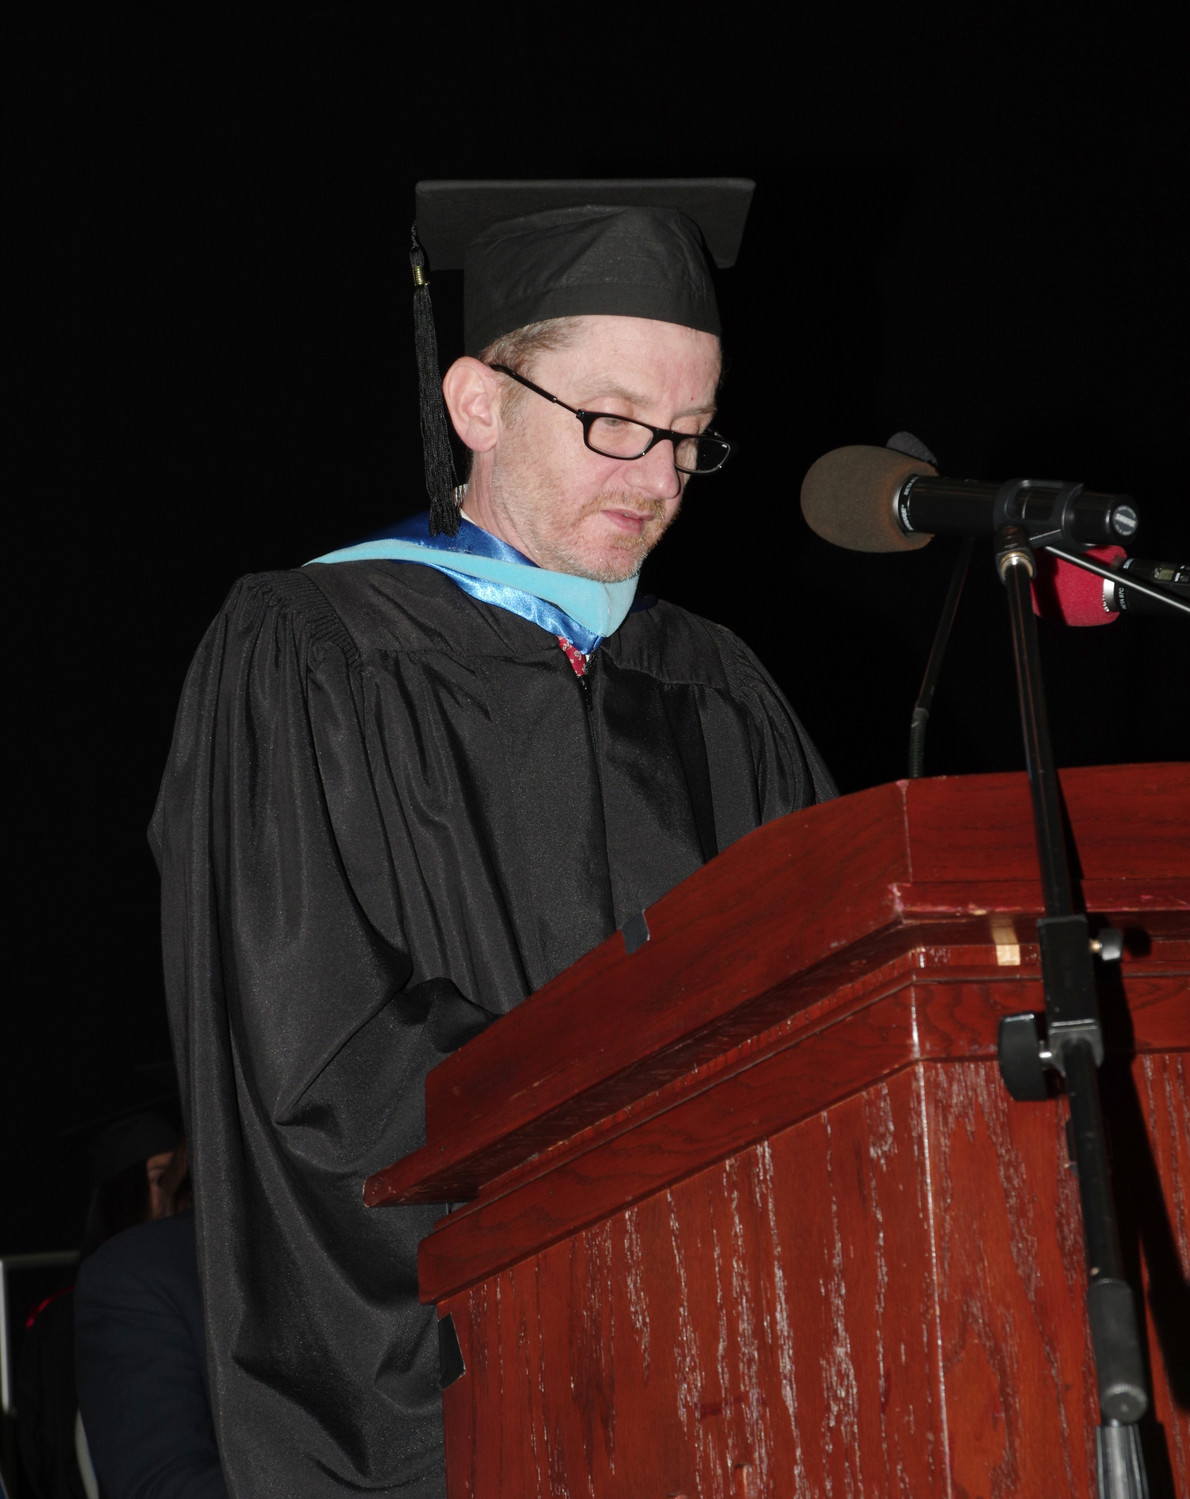 Principal John Murphy, above, wished the senior students the best and added that he would miss them.